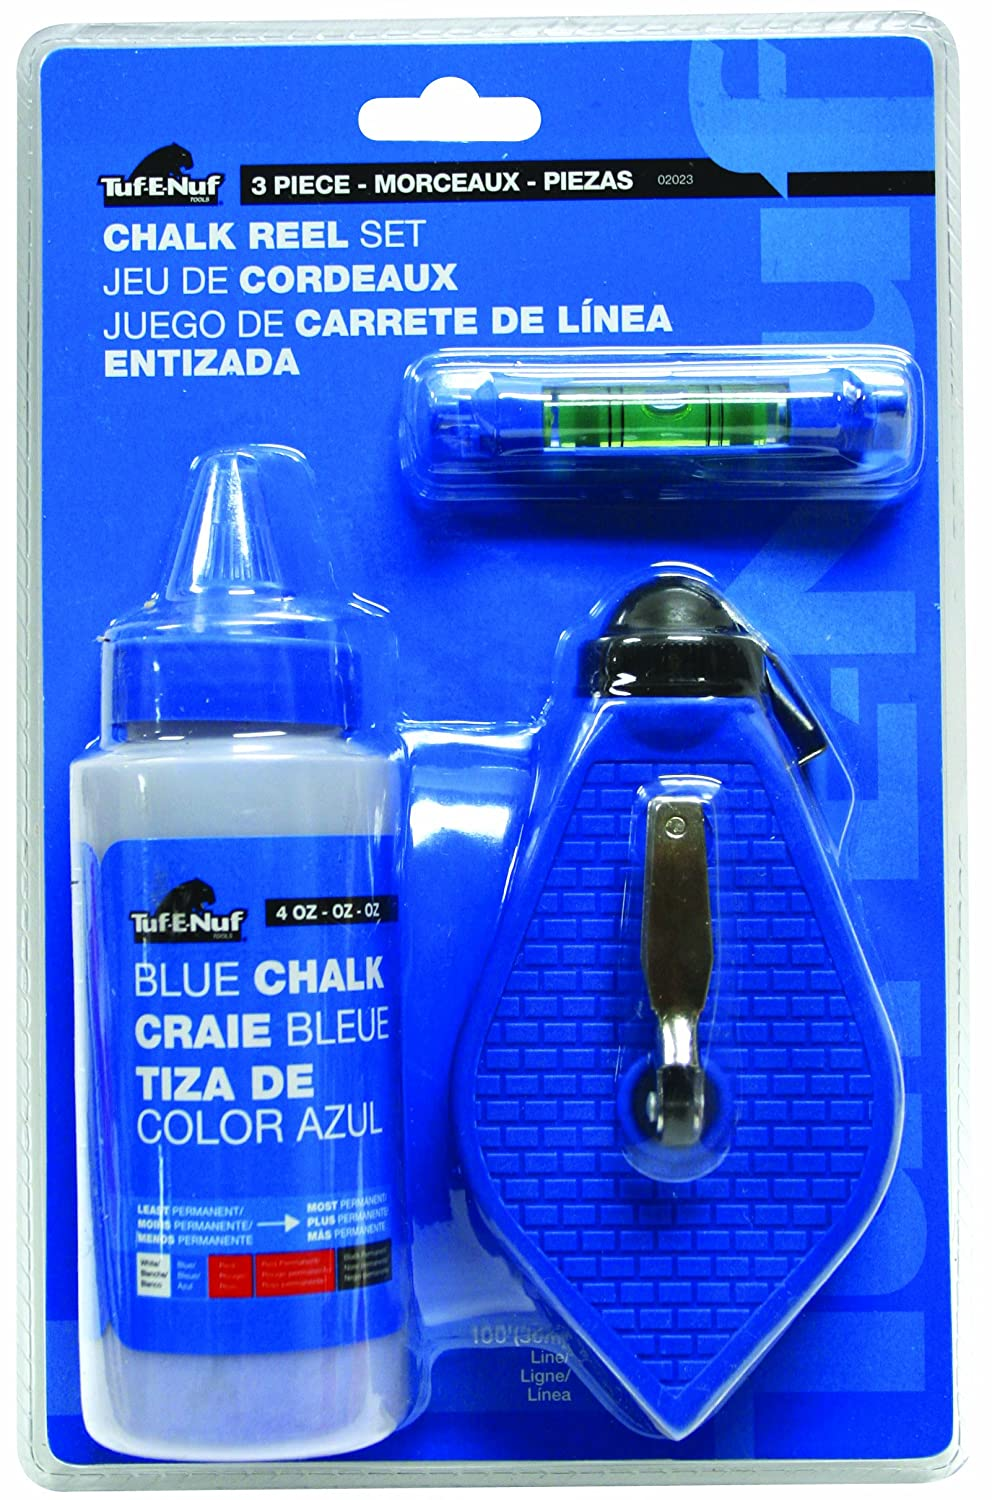 Task Tools 02023 Tuf-E-Nuf Reel Set with Chalk and Line Level LCM Team Task Tools